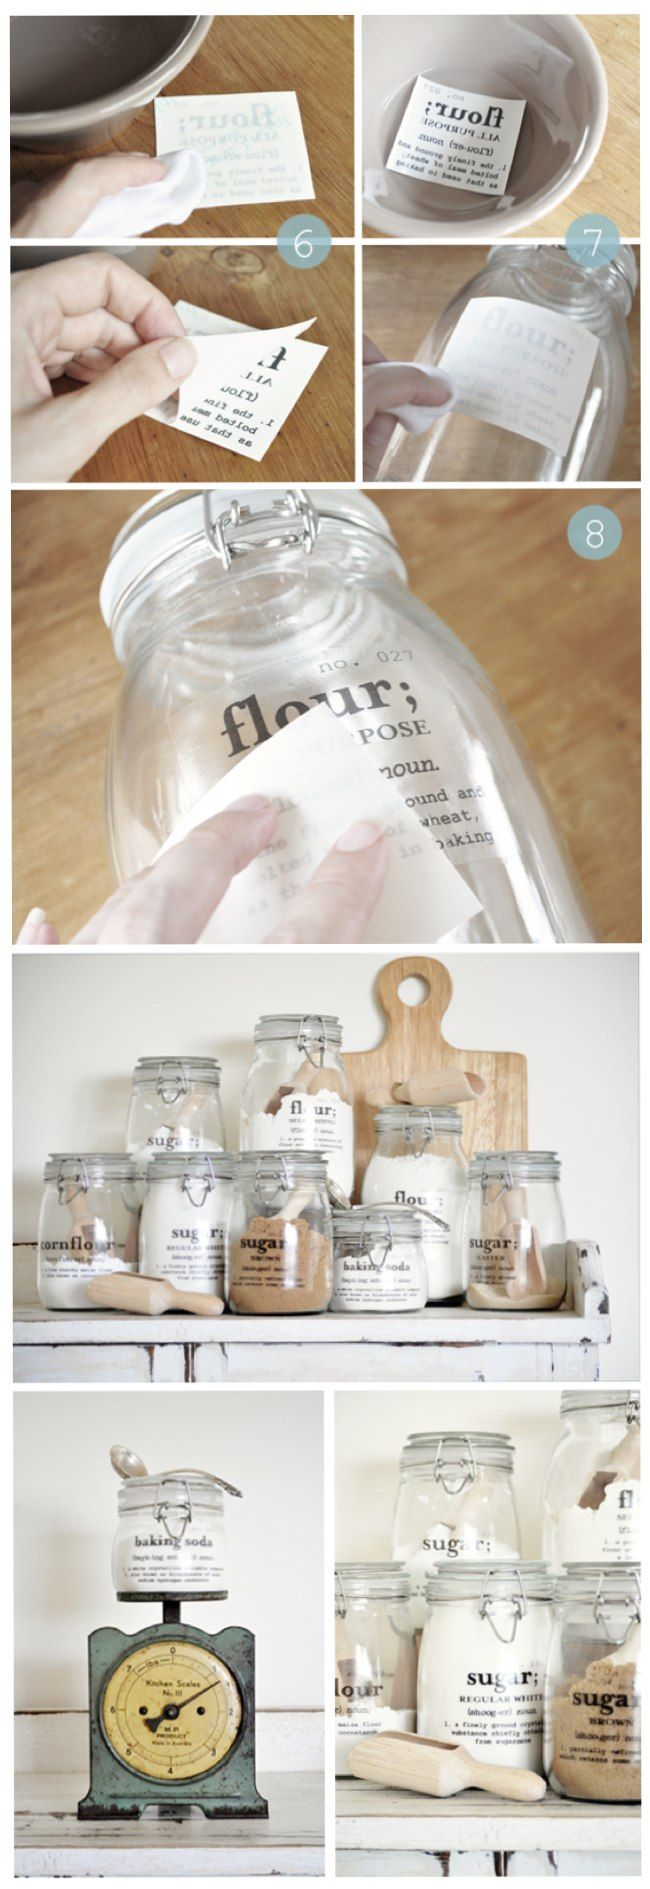 DIY Kitchen Containers With Labels